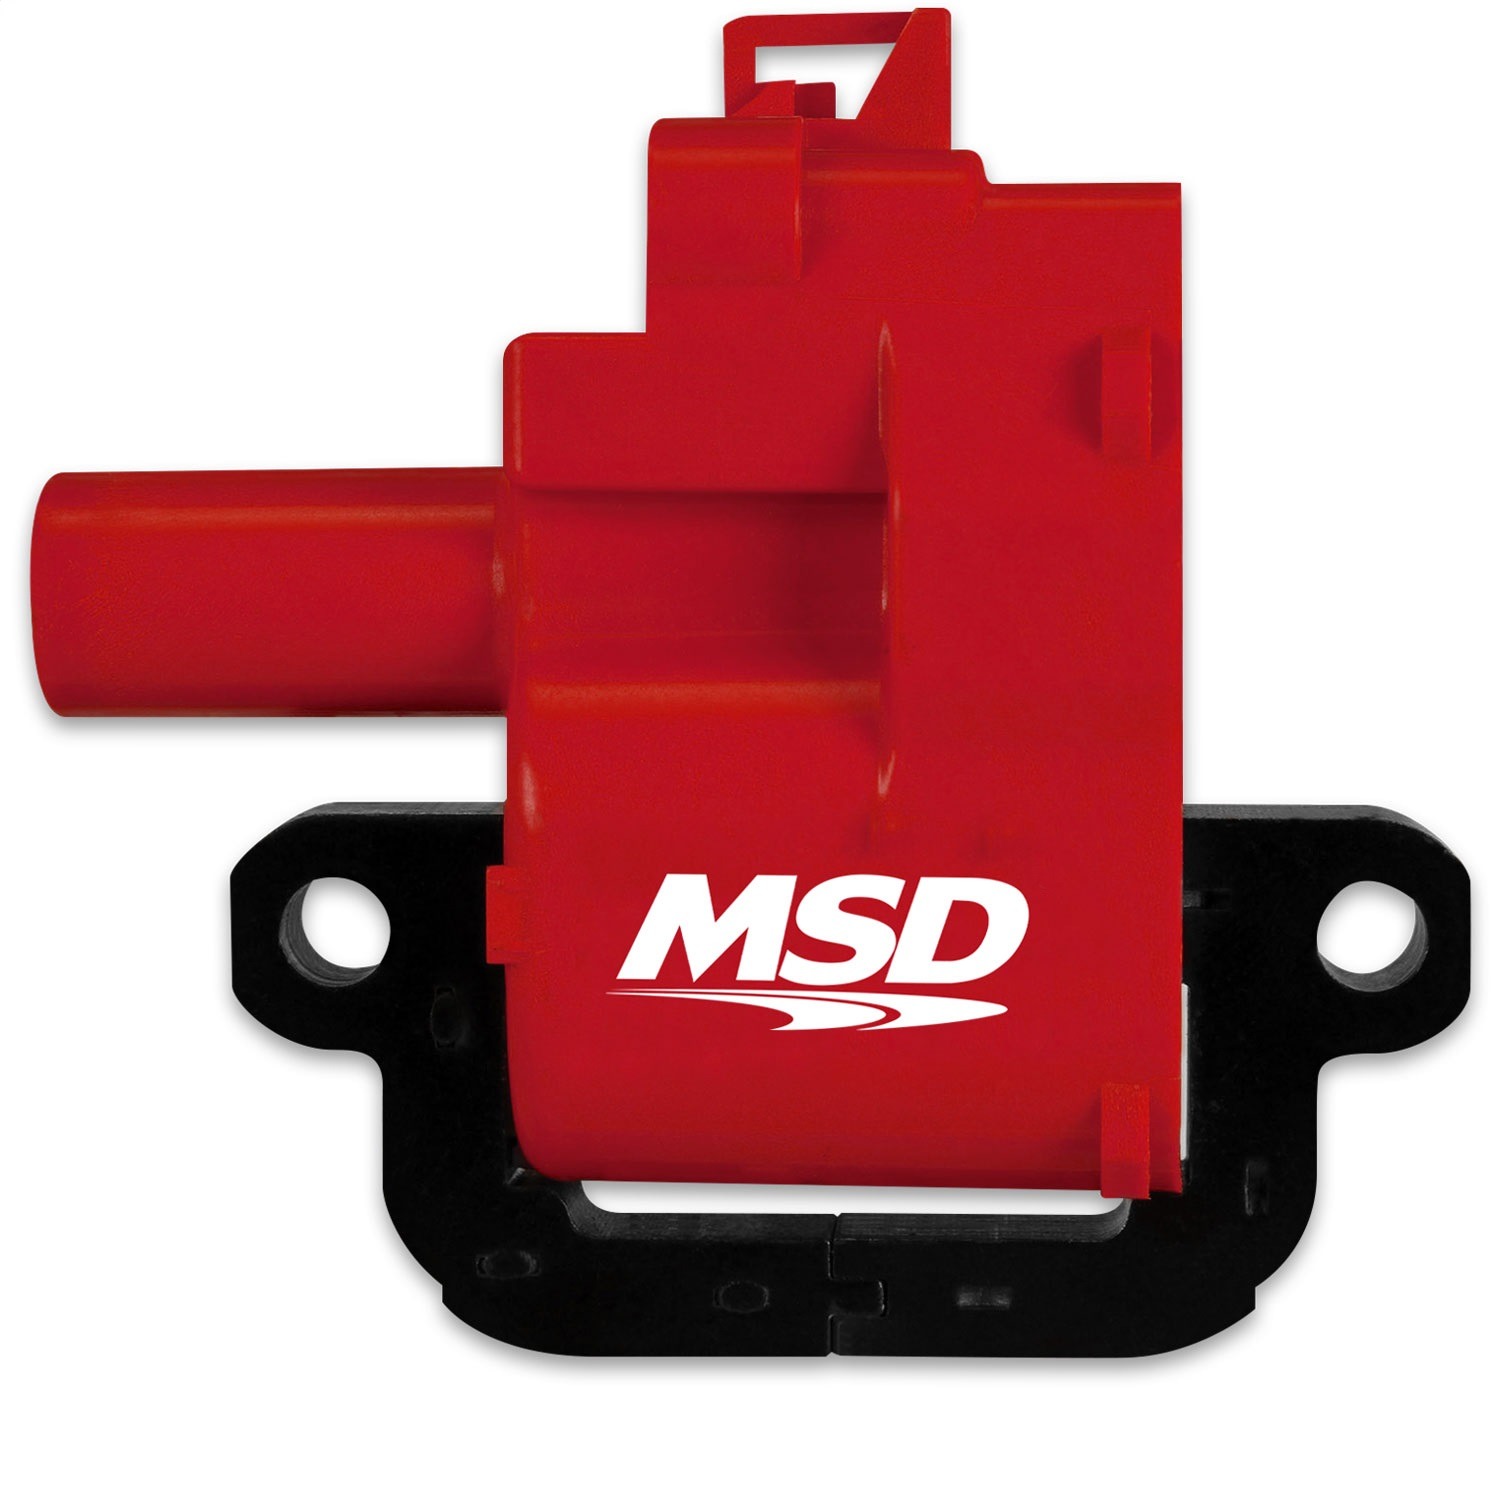 MSD Ignition 8262 Blaster Direct Ignition Coil